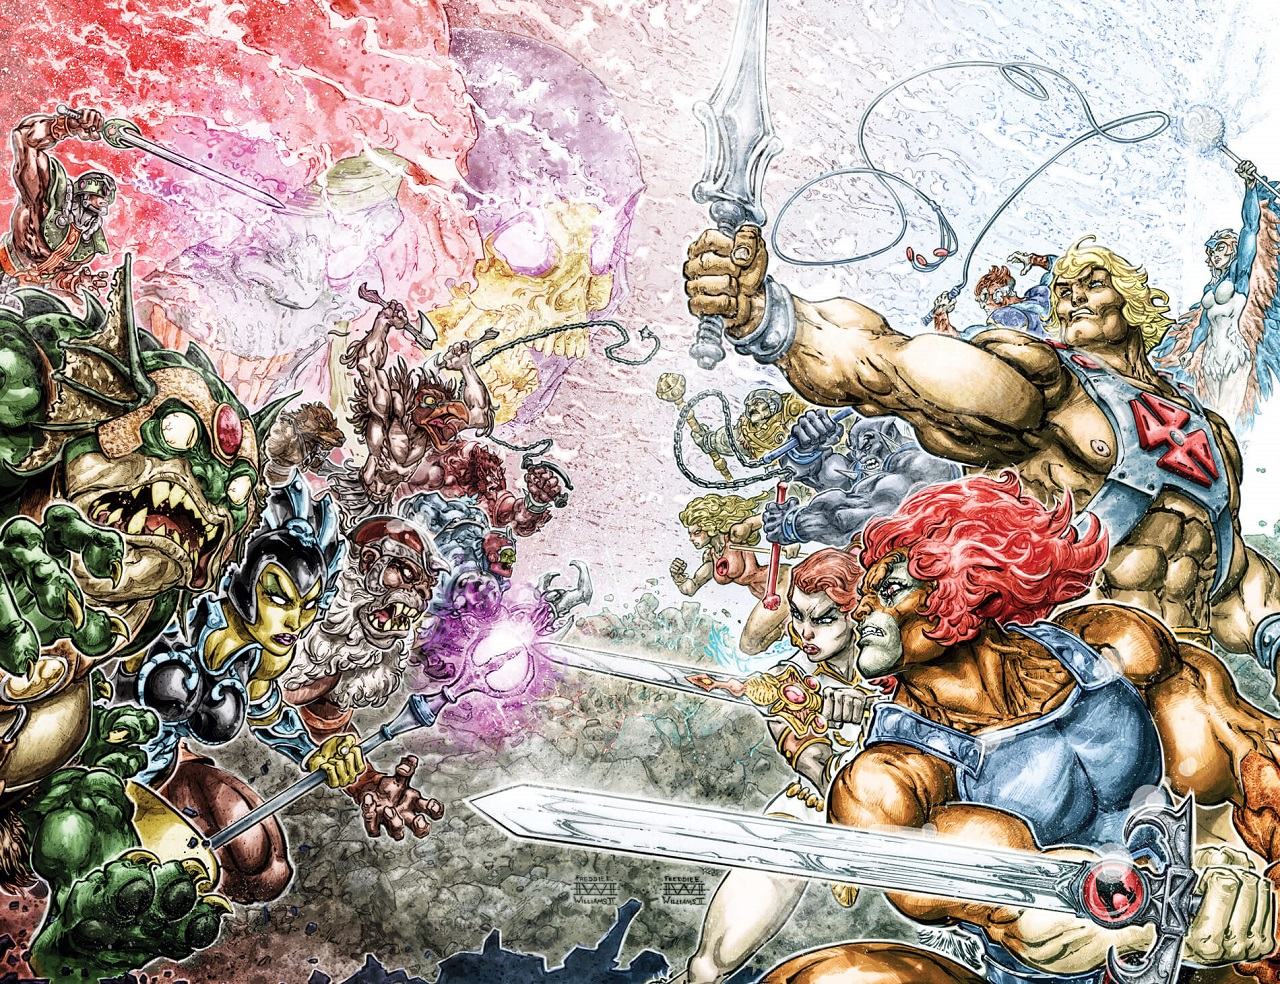 What's Old is New Again: He-Man/ThunderCats